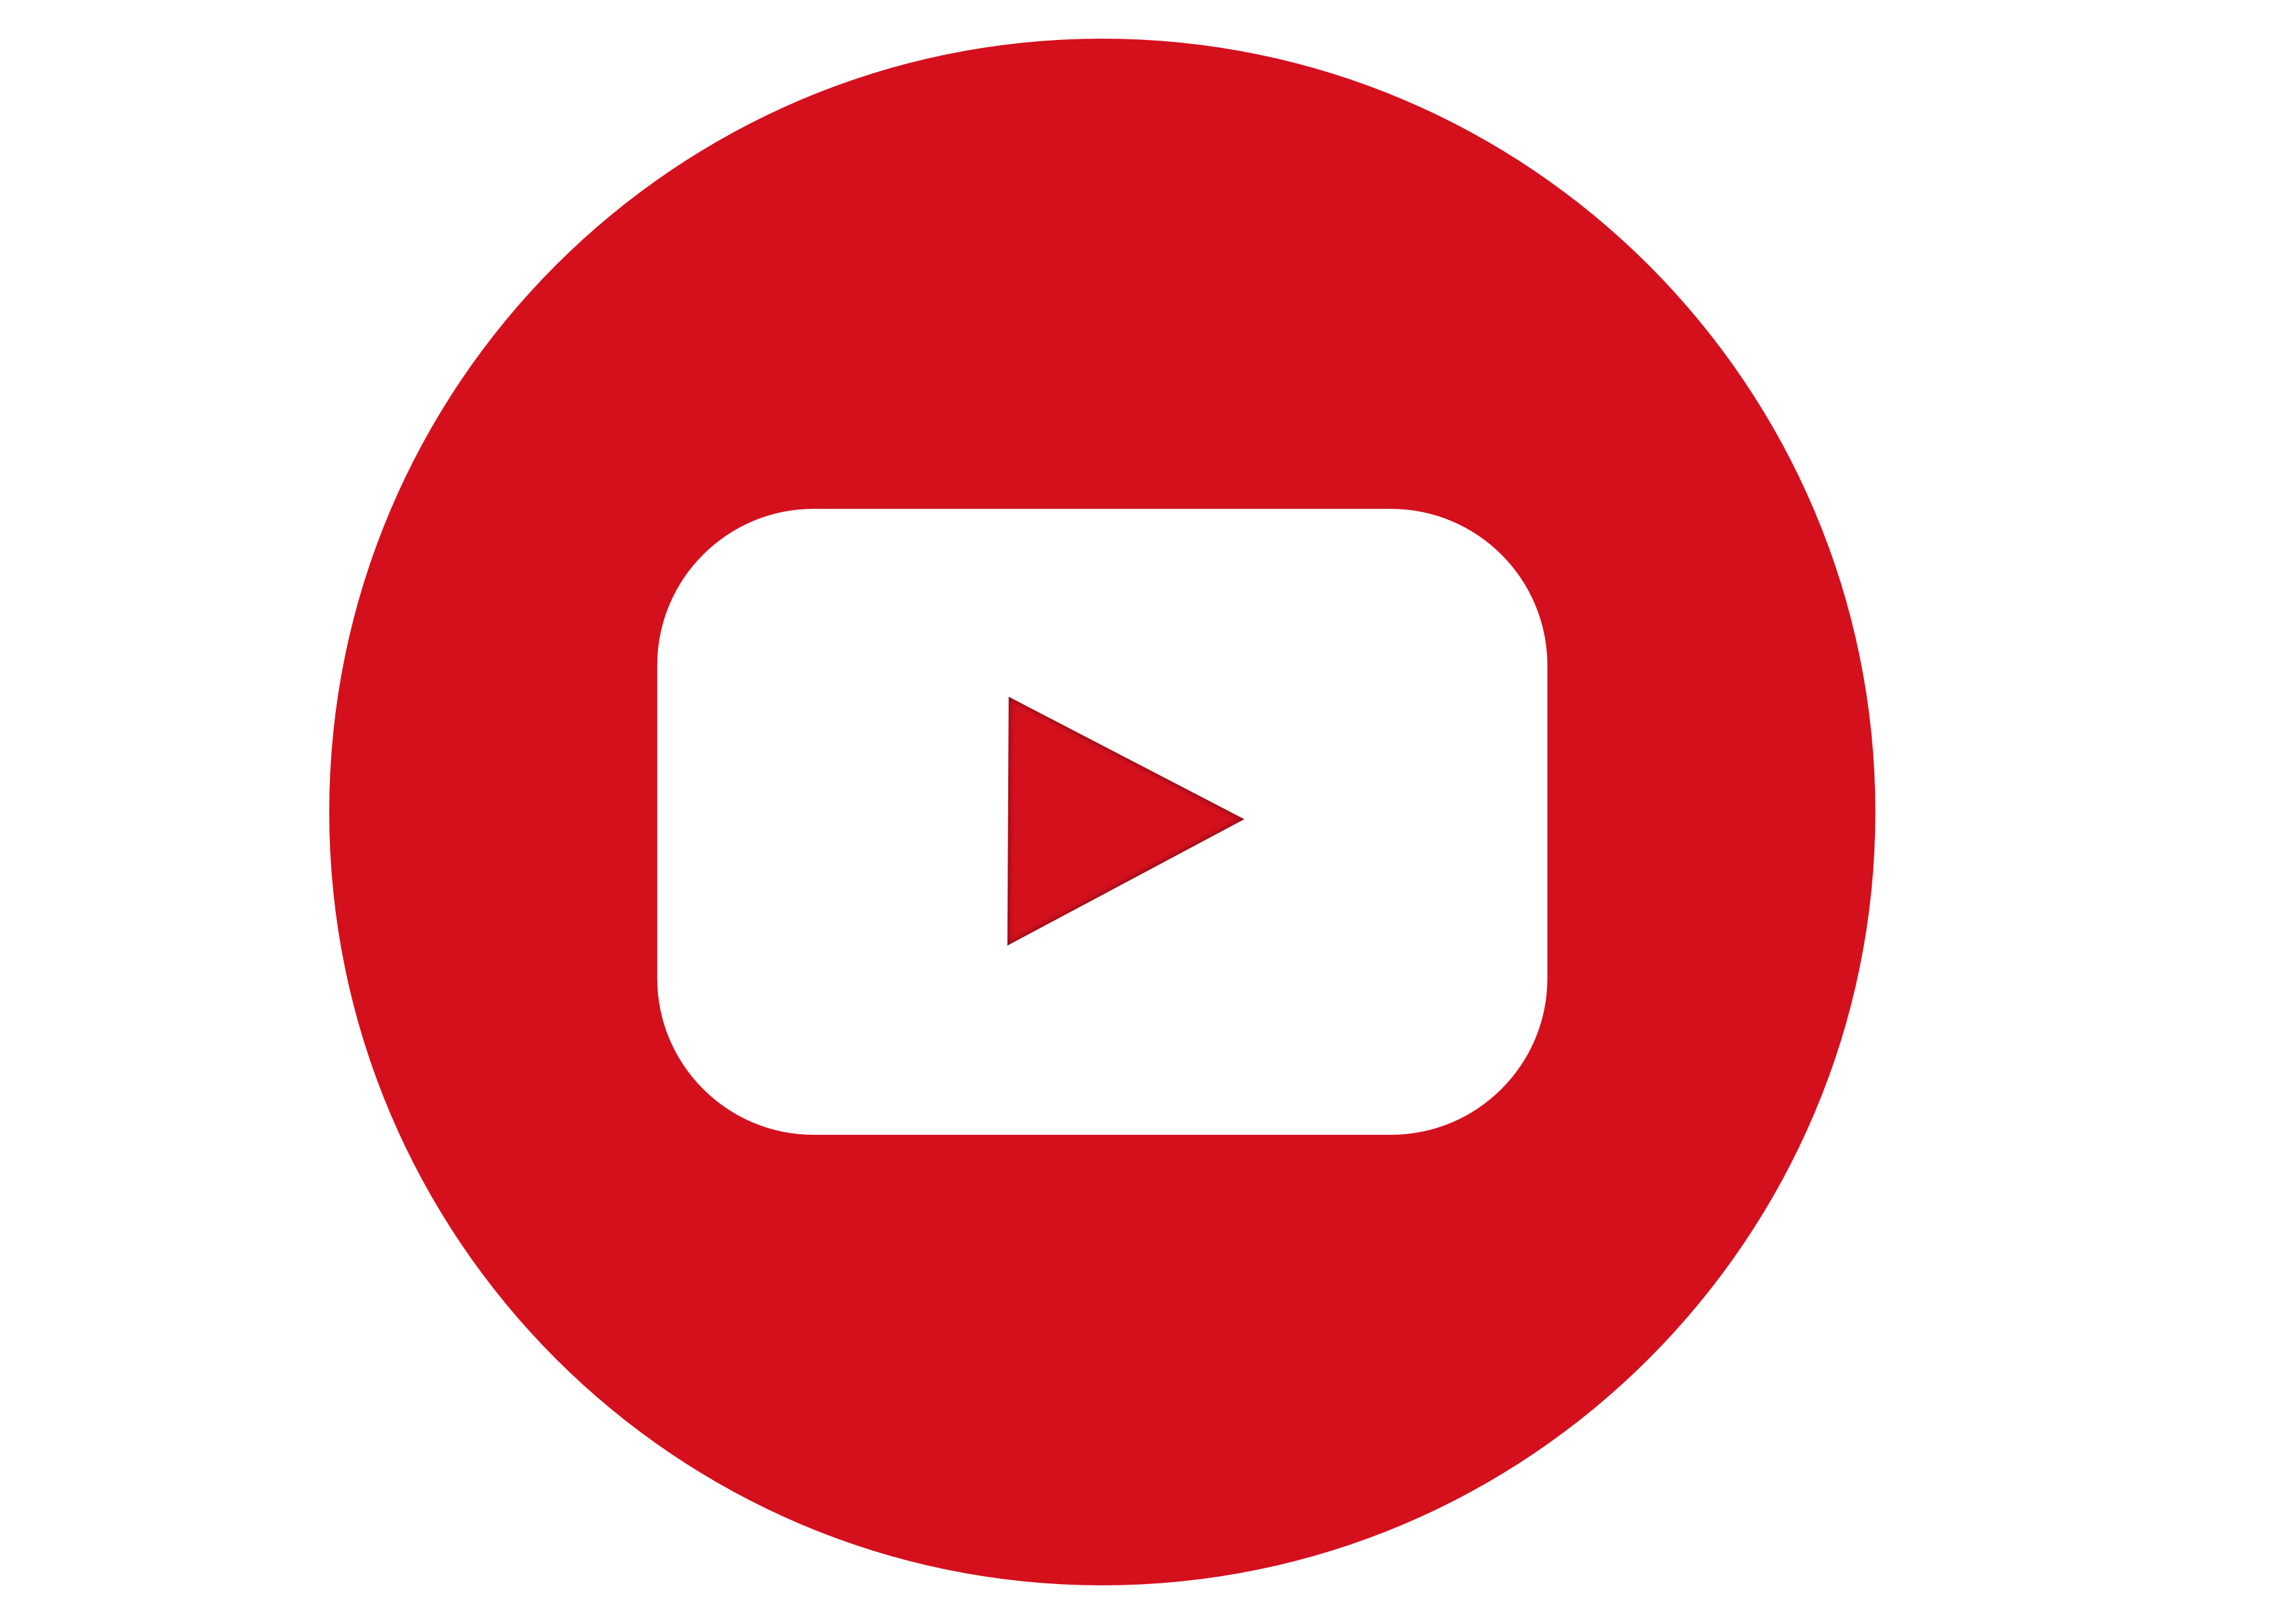 youtube-logo-png-2092.png